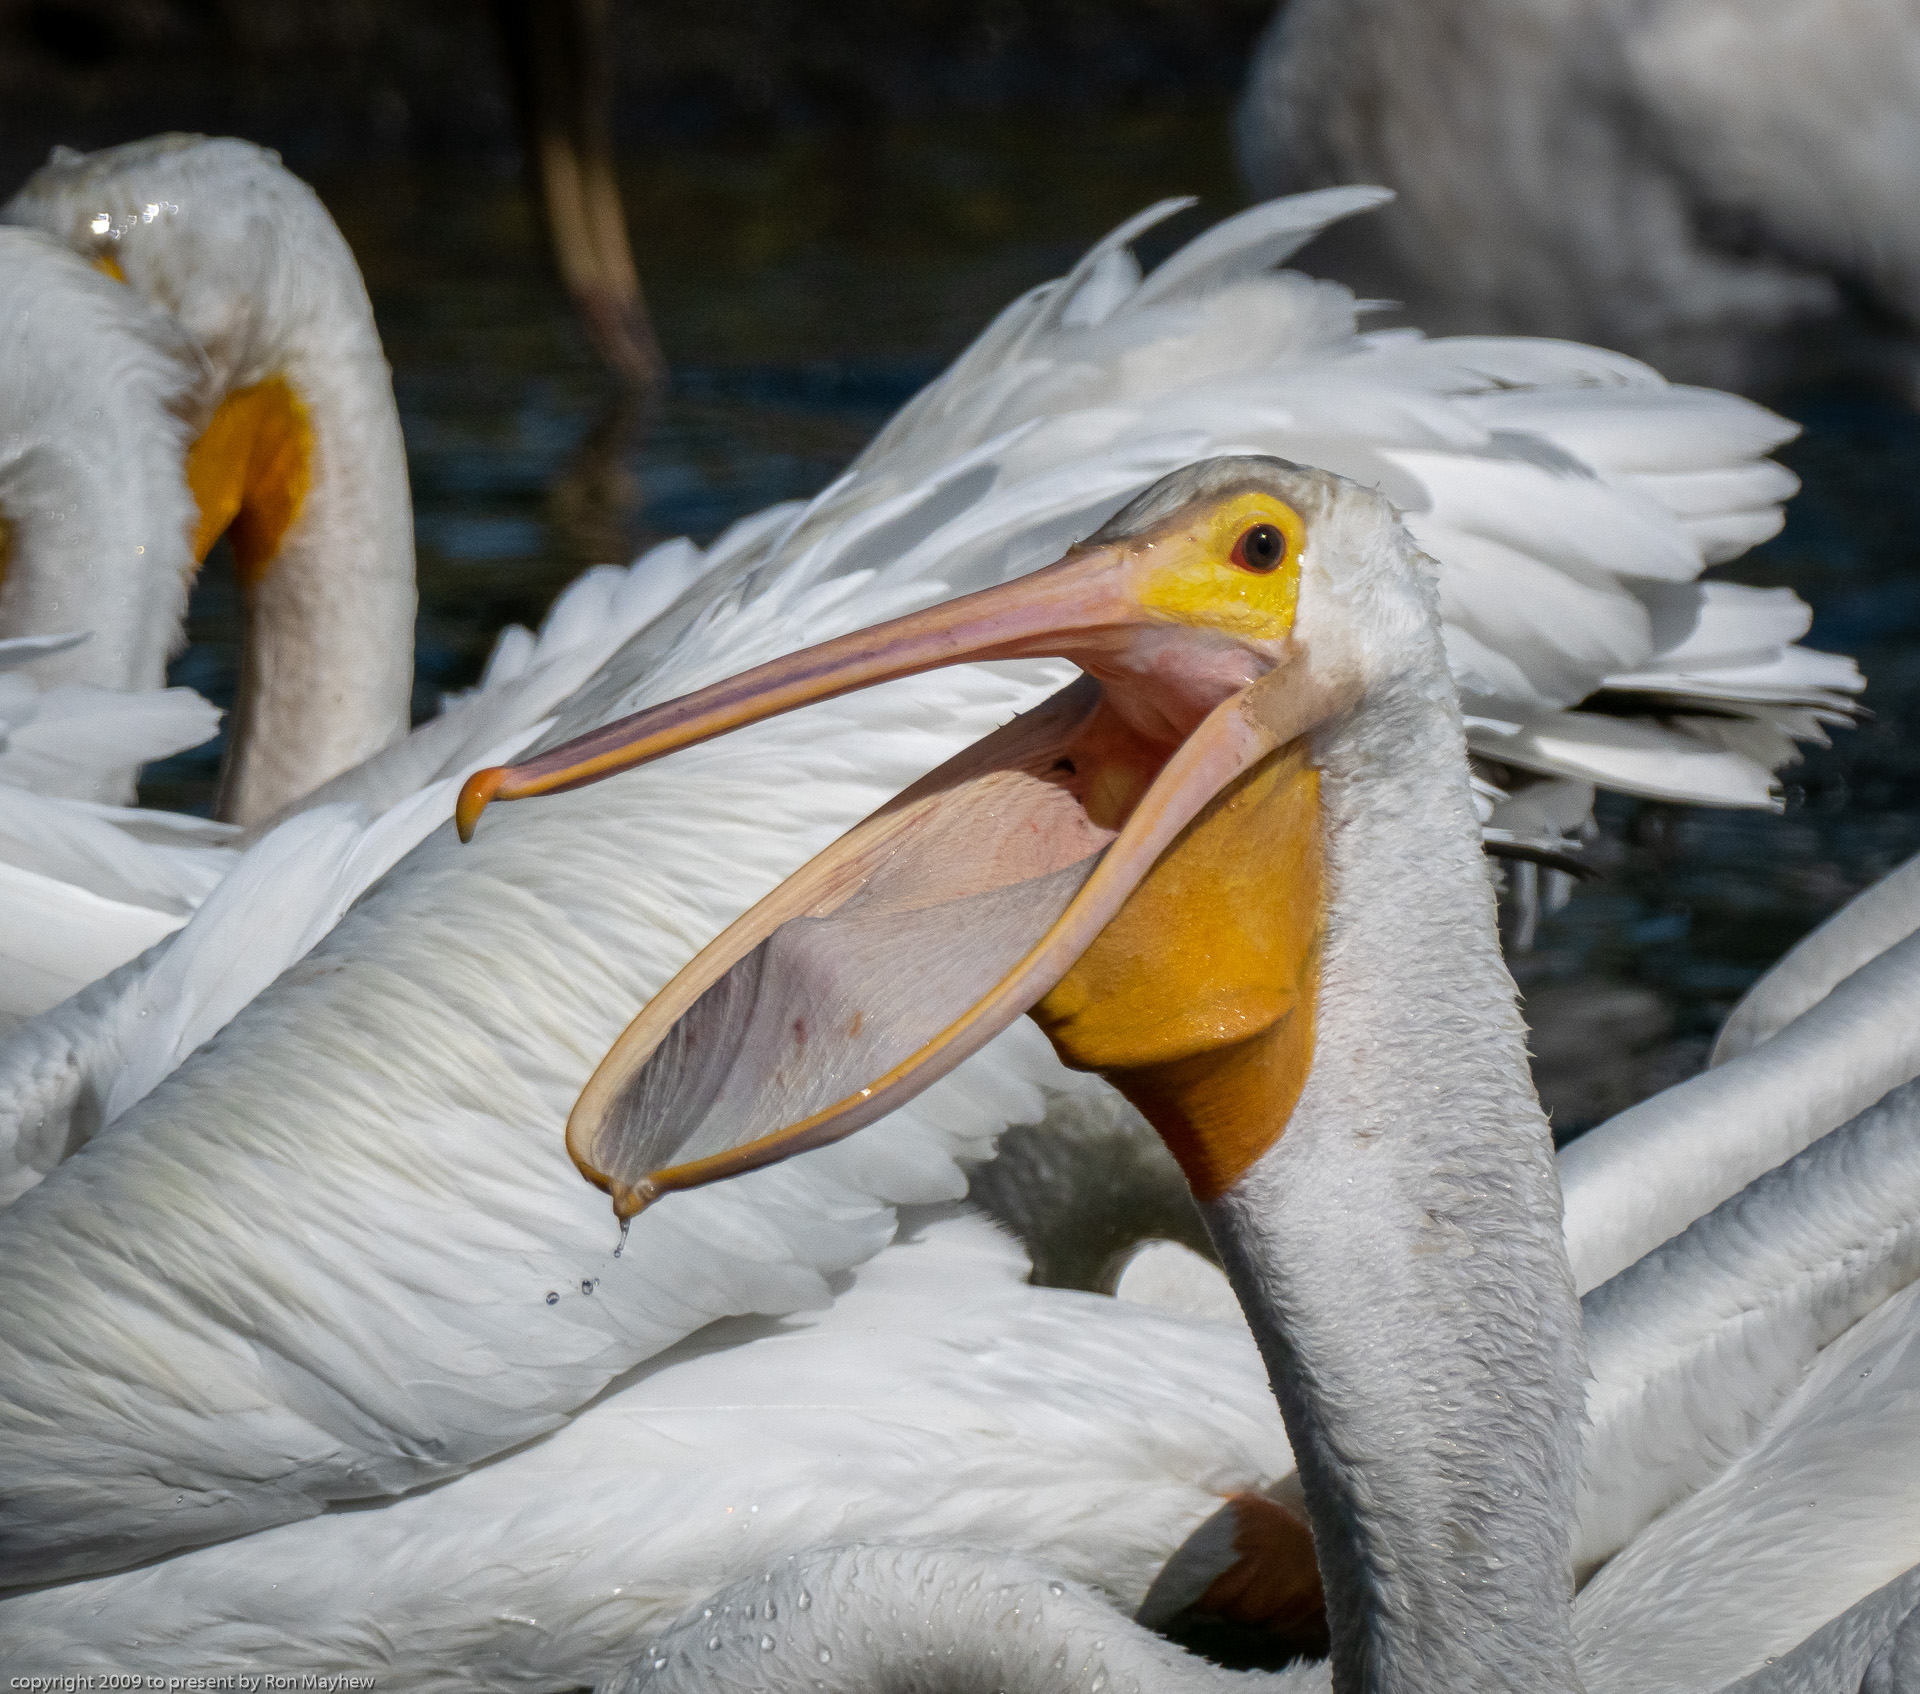 The American White Pelicans are back